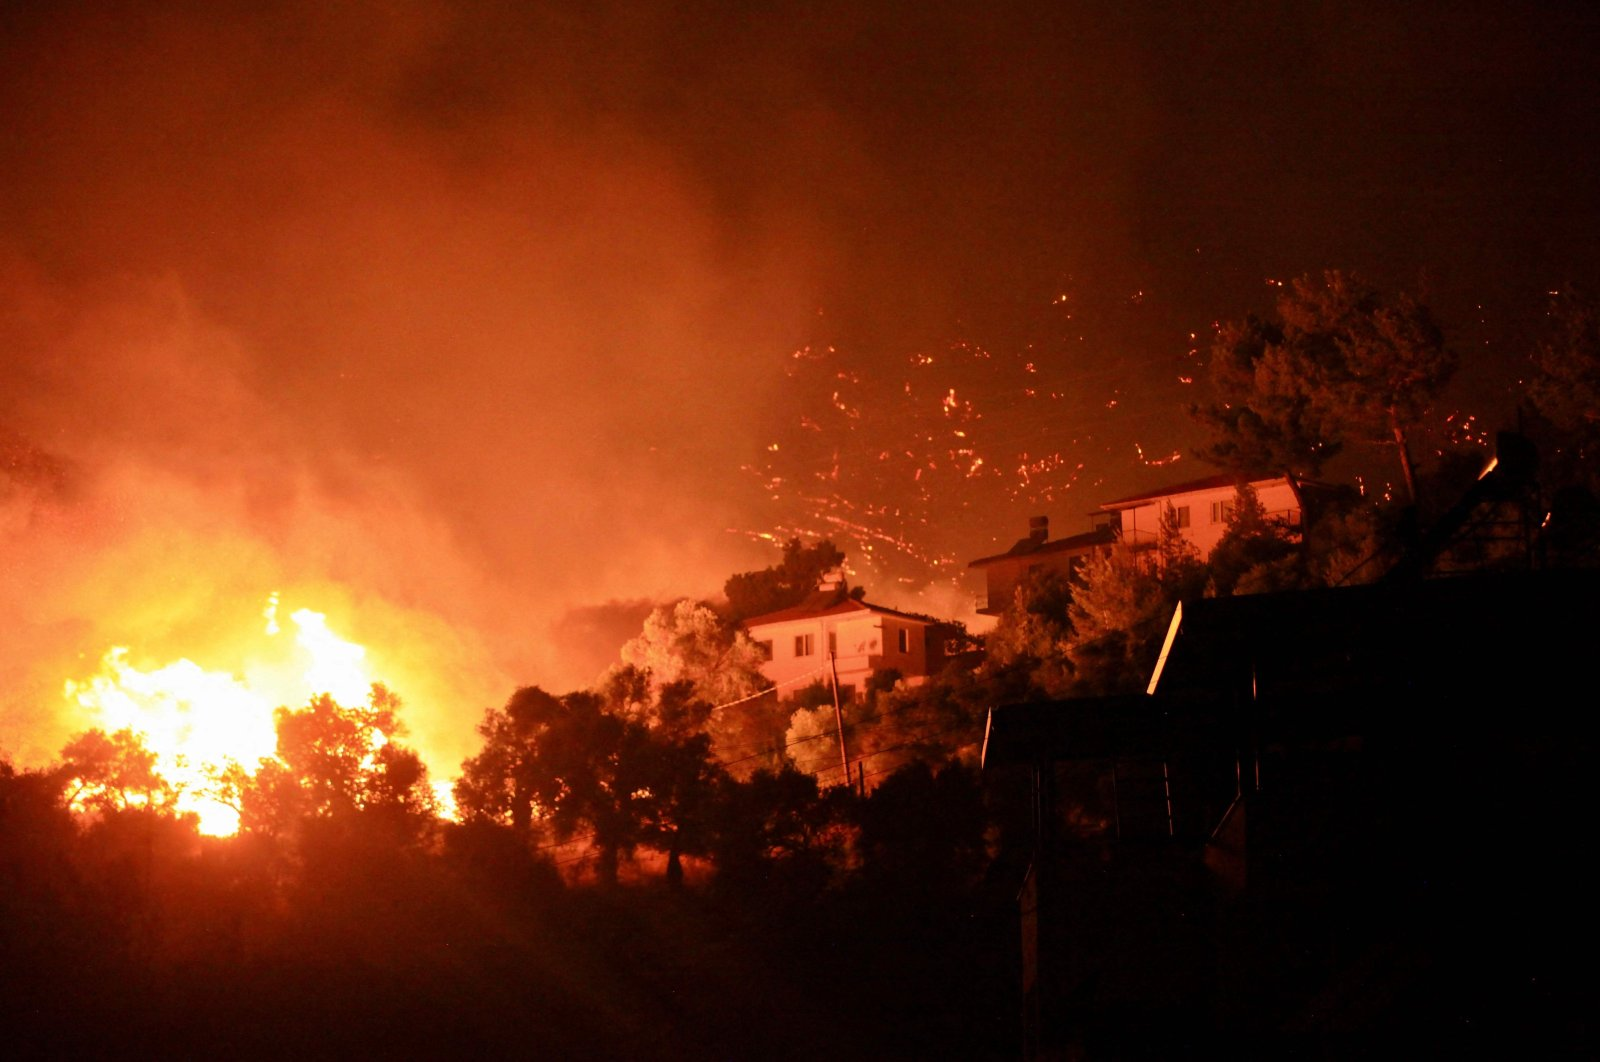 Flames rising from a fire spreading in the Aegean coast city of Ören, near Milas, in the holiday region of Muğla, Turkey, on Aug. 3, 2021. (AFP Photo)